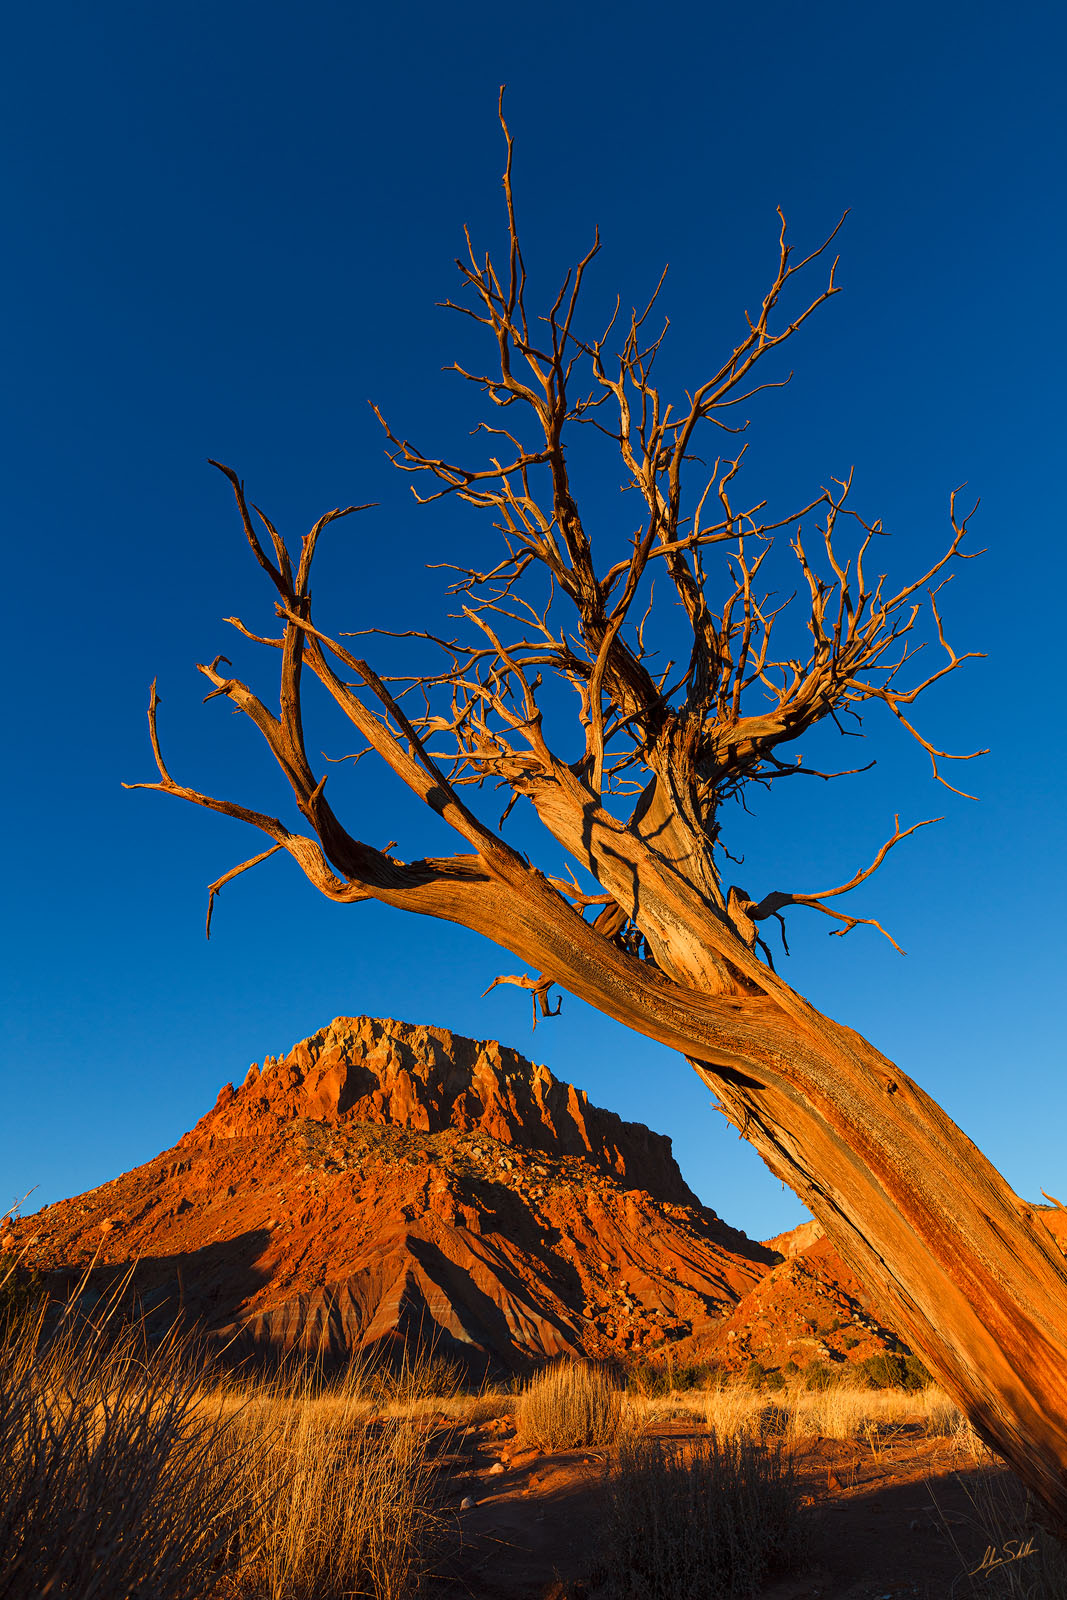 Abiquiu, Blue, Georgia OKeeffe, Ghost Ranch, NM, New Mexico, okeeffe, Sky, Tree, photo